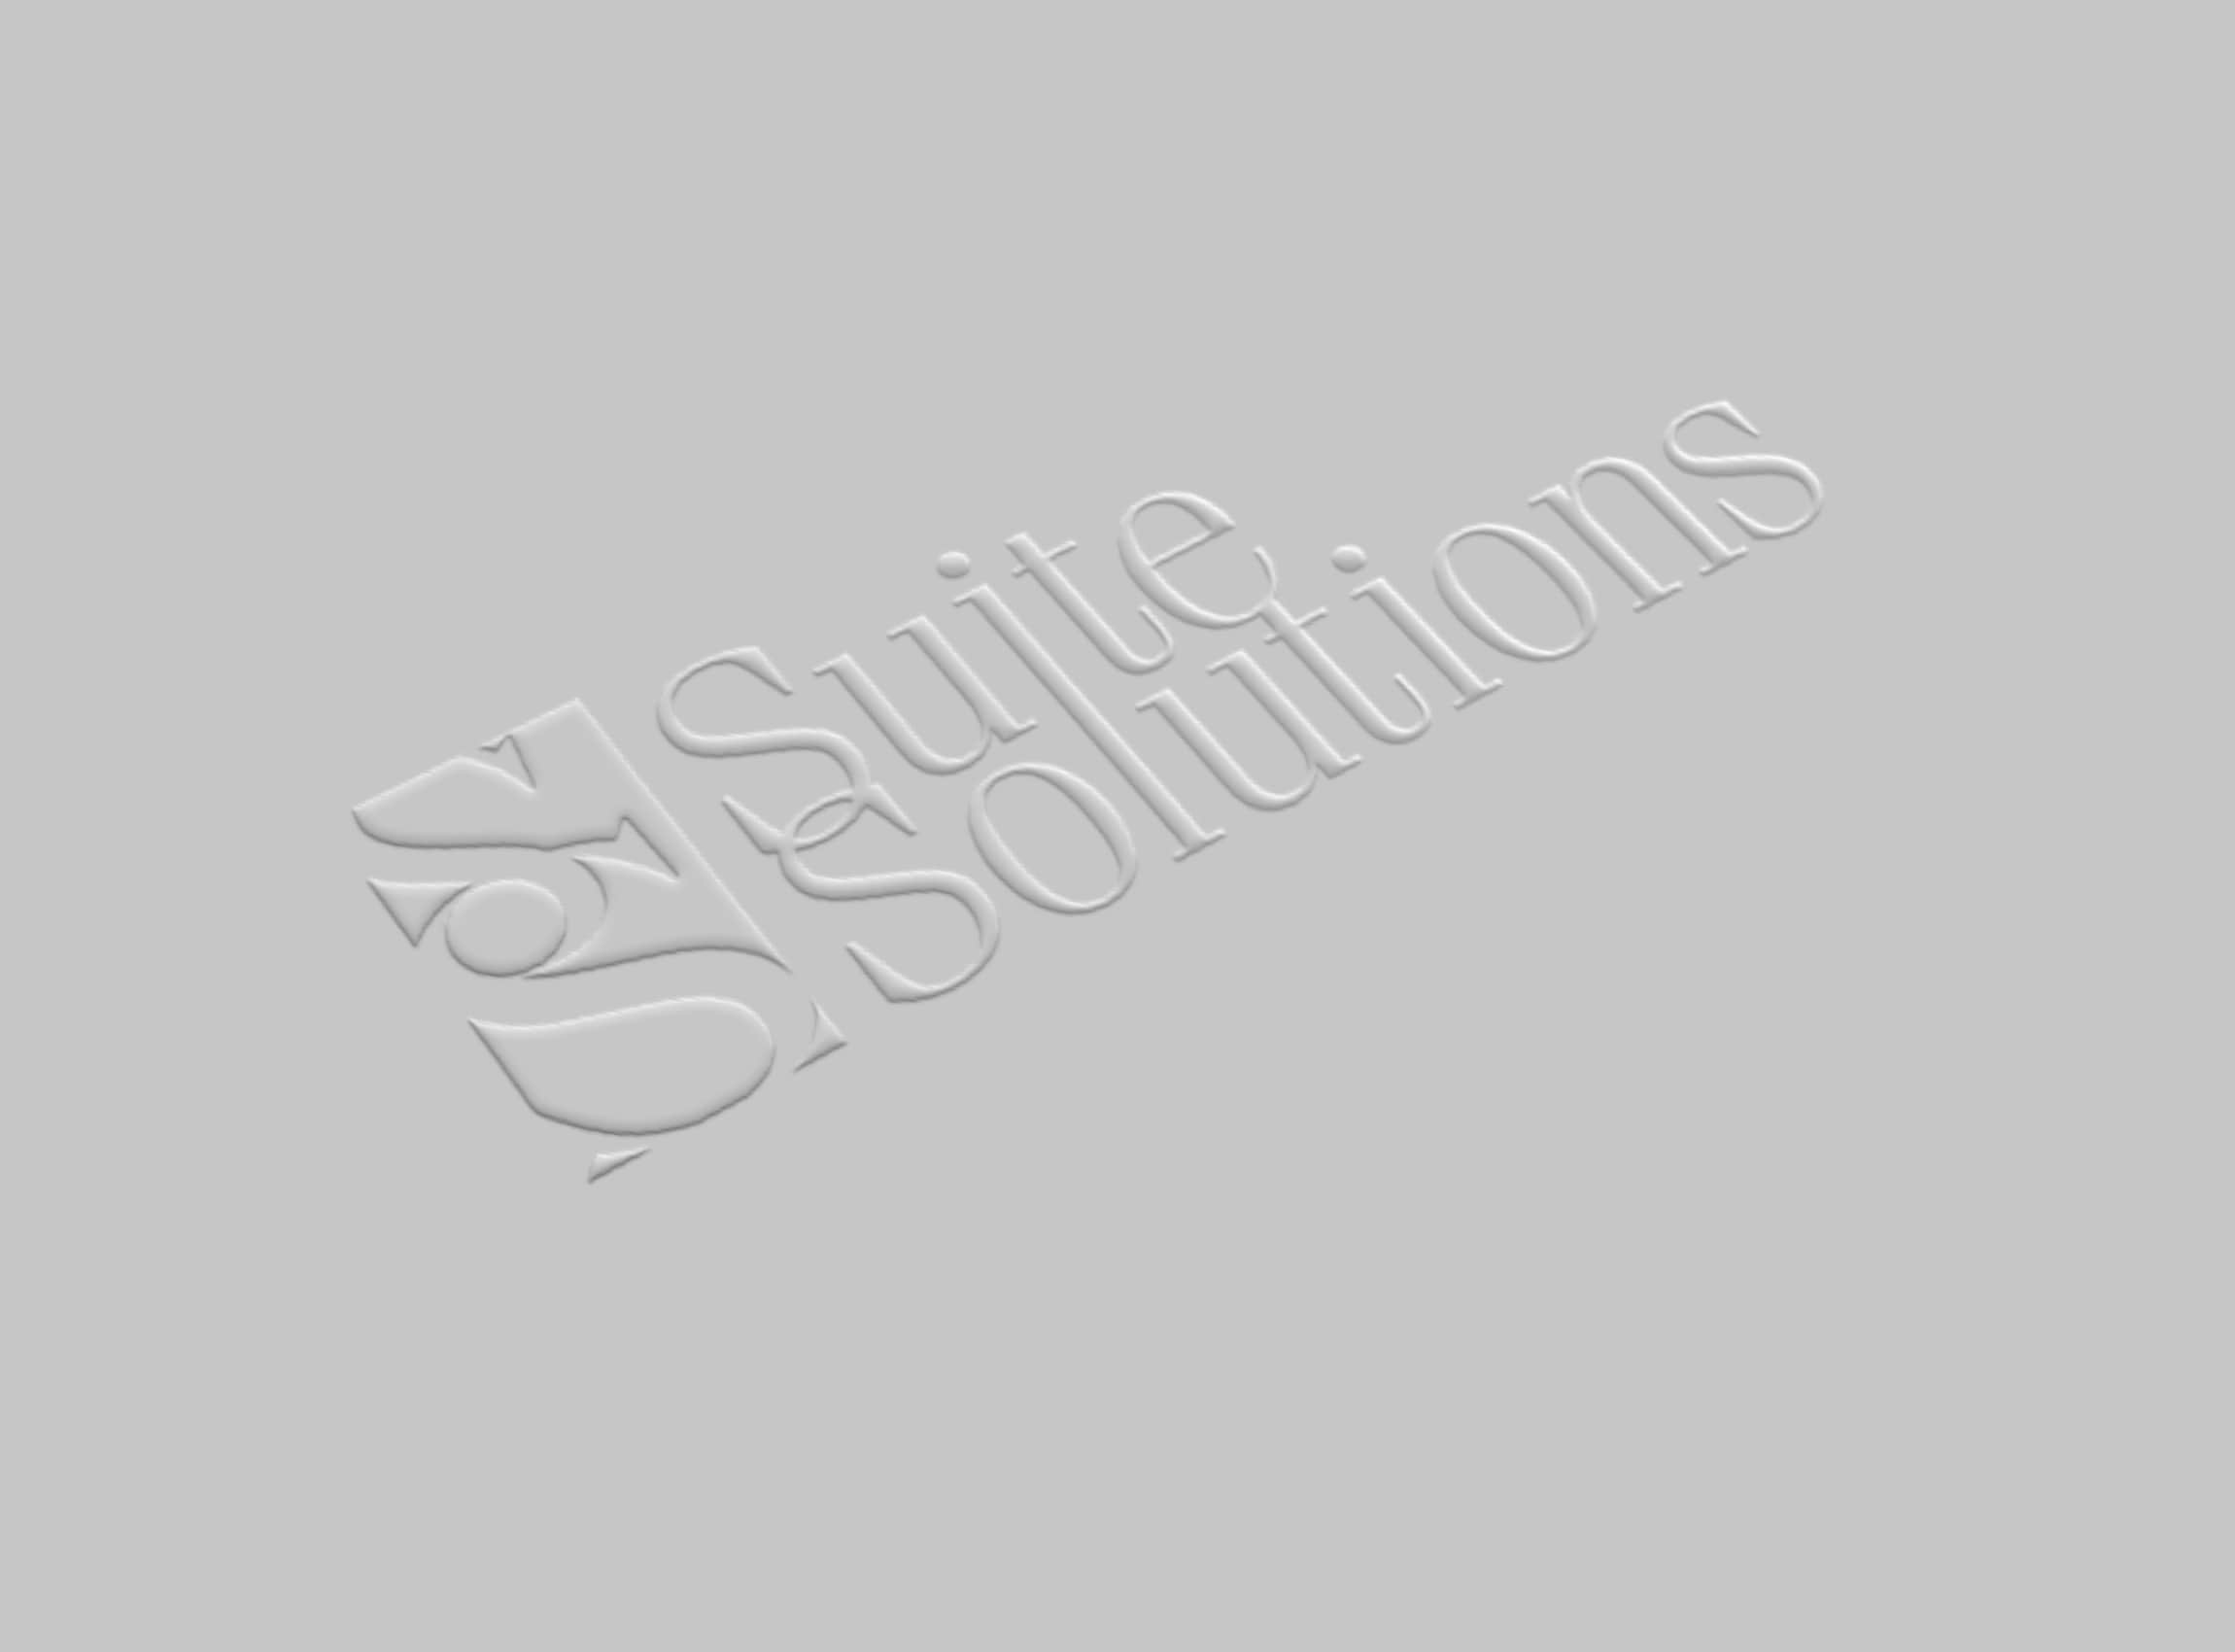 Suite Solutions